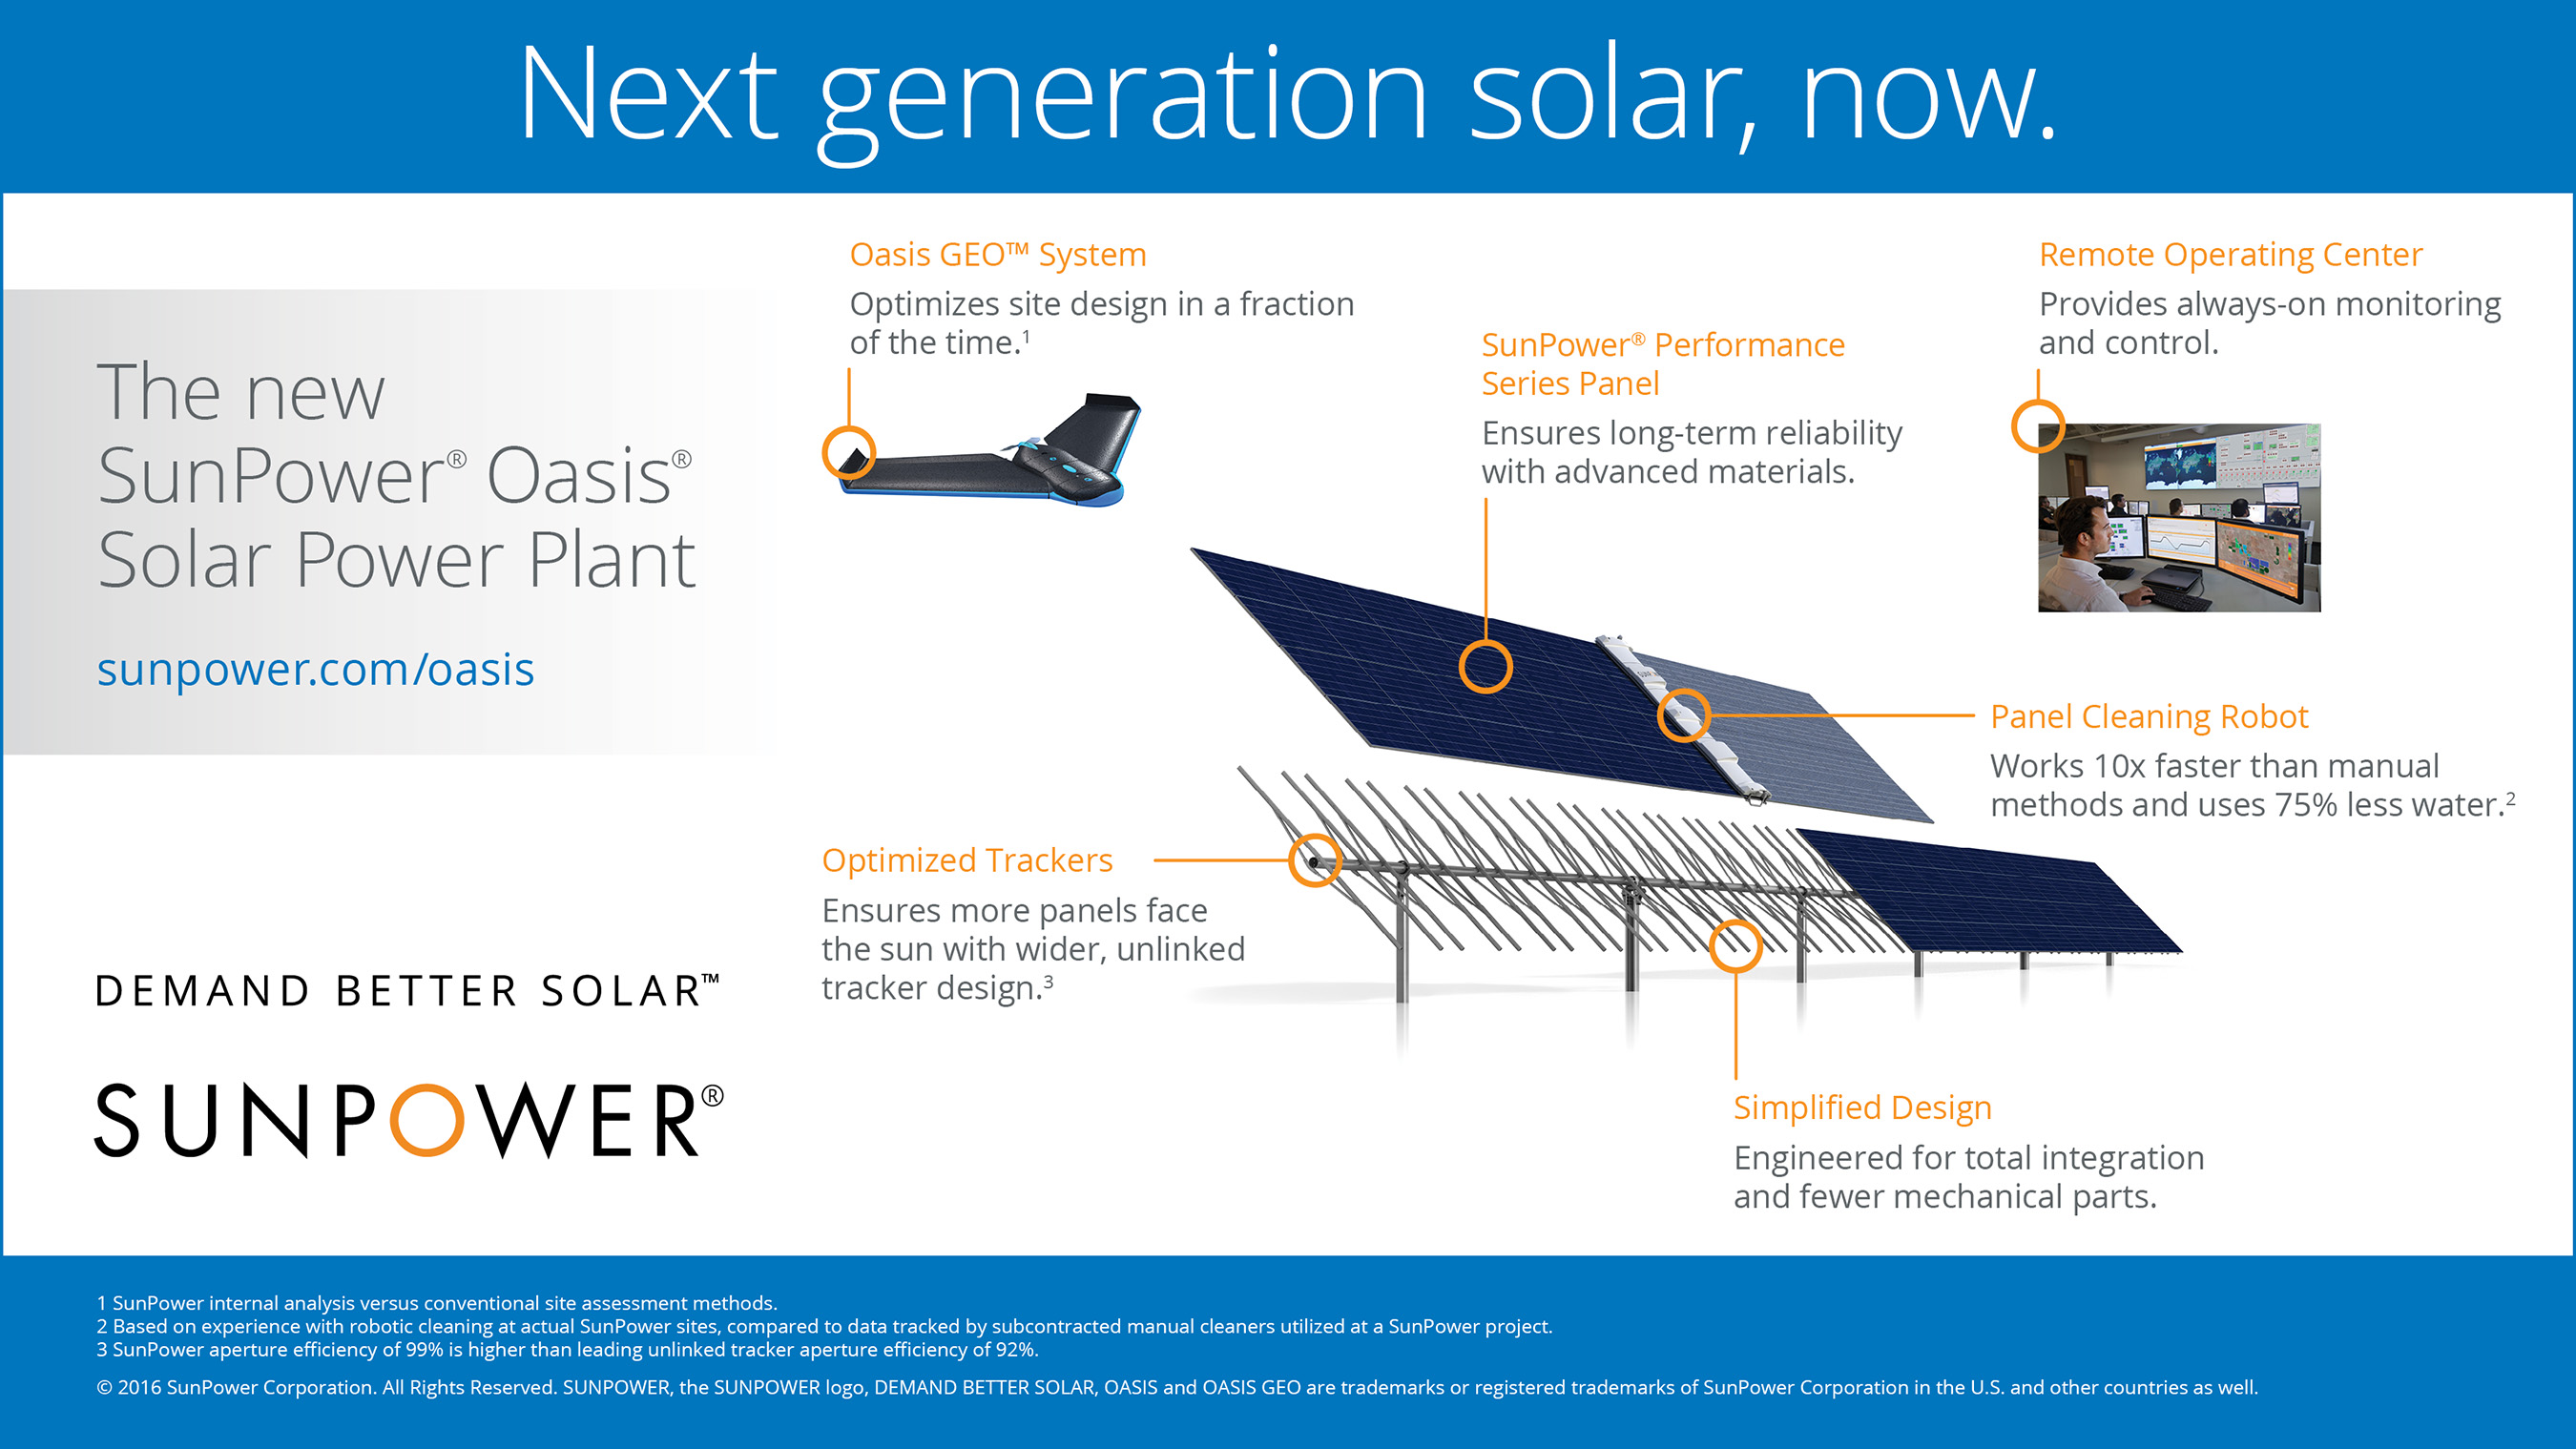 SunPower(R) Oasis(R) platform for large-scale solar power plants, featuring a seamless integration of hardware and software.